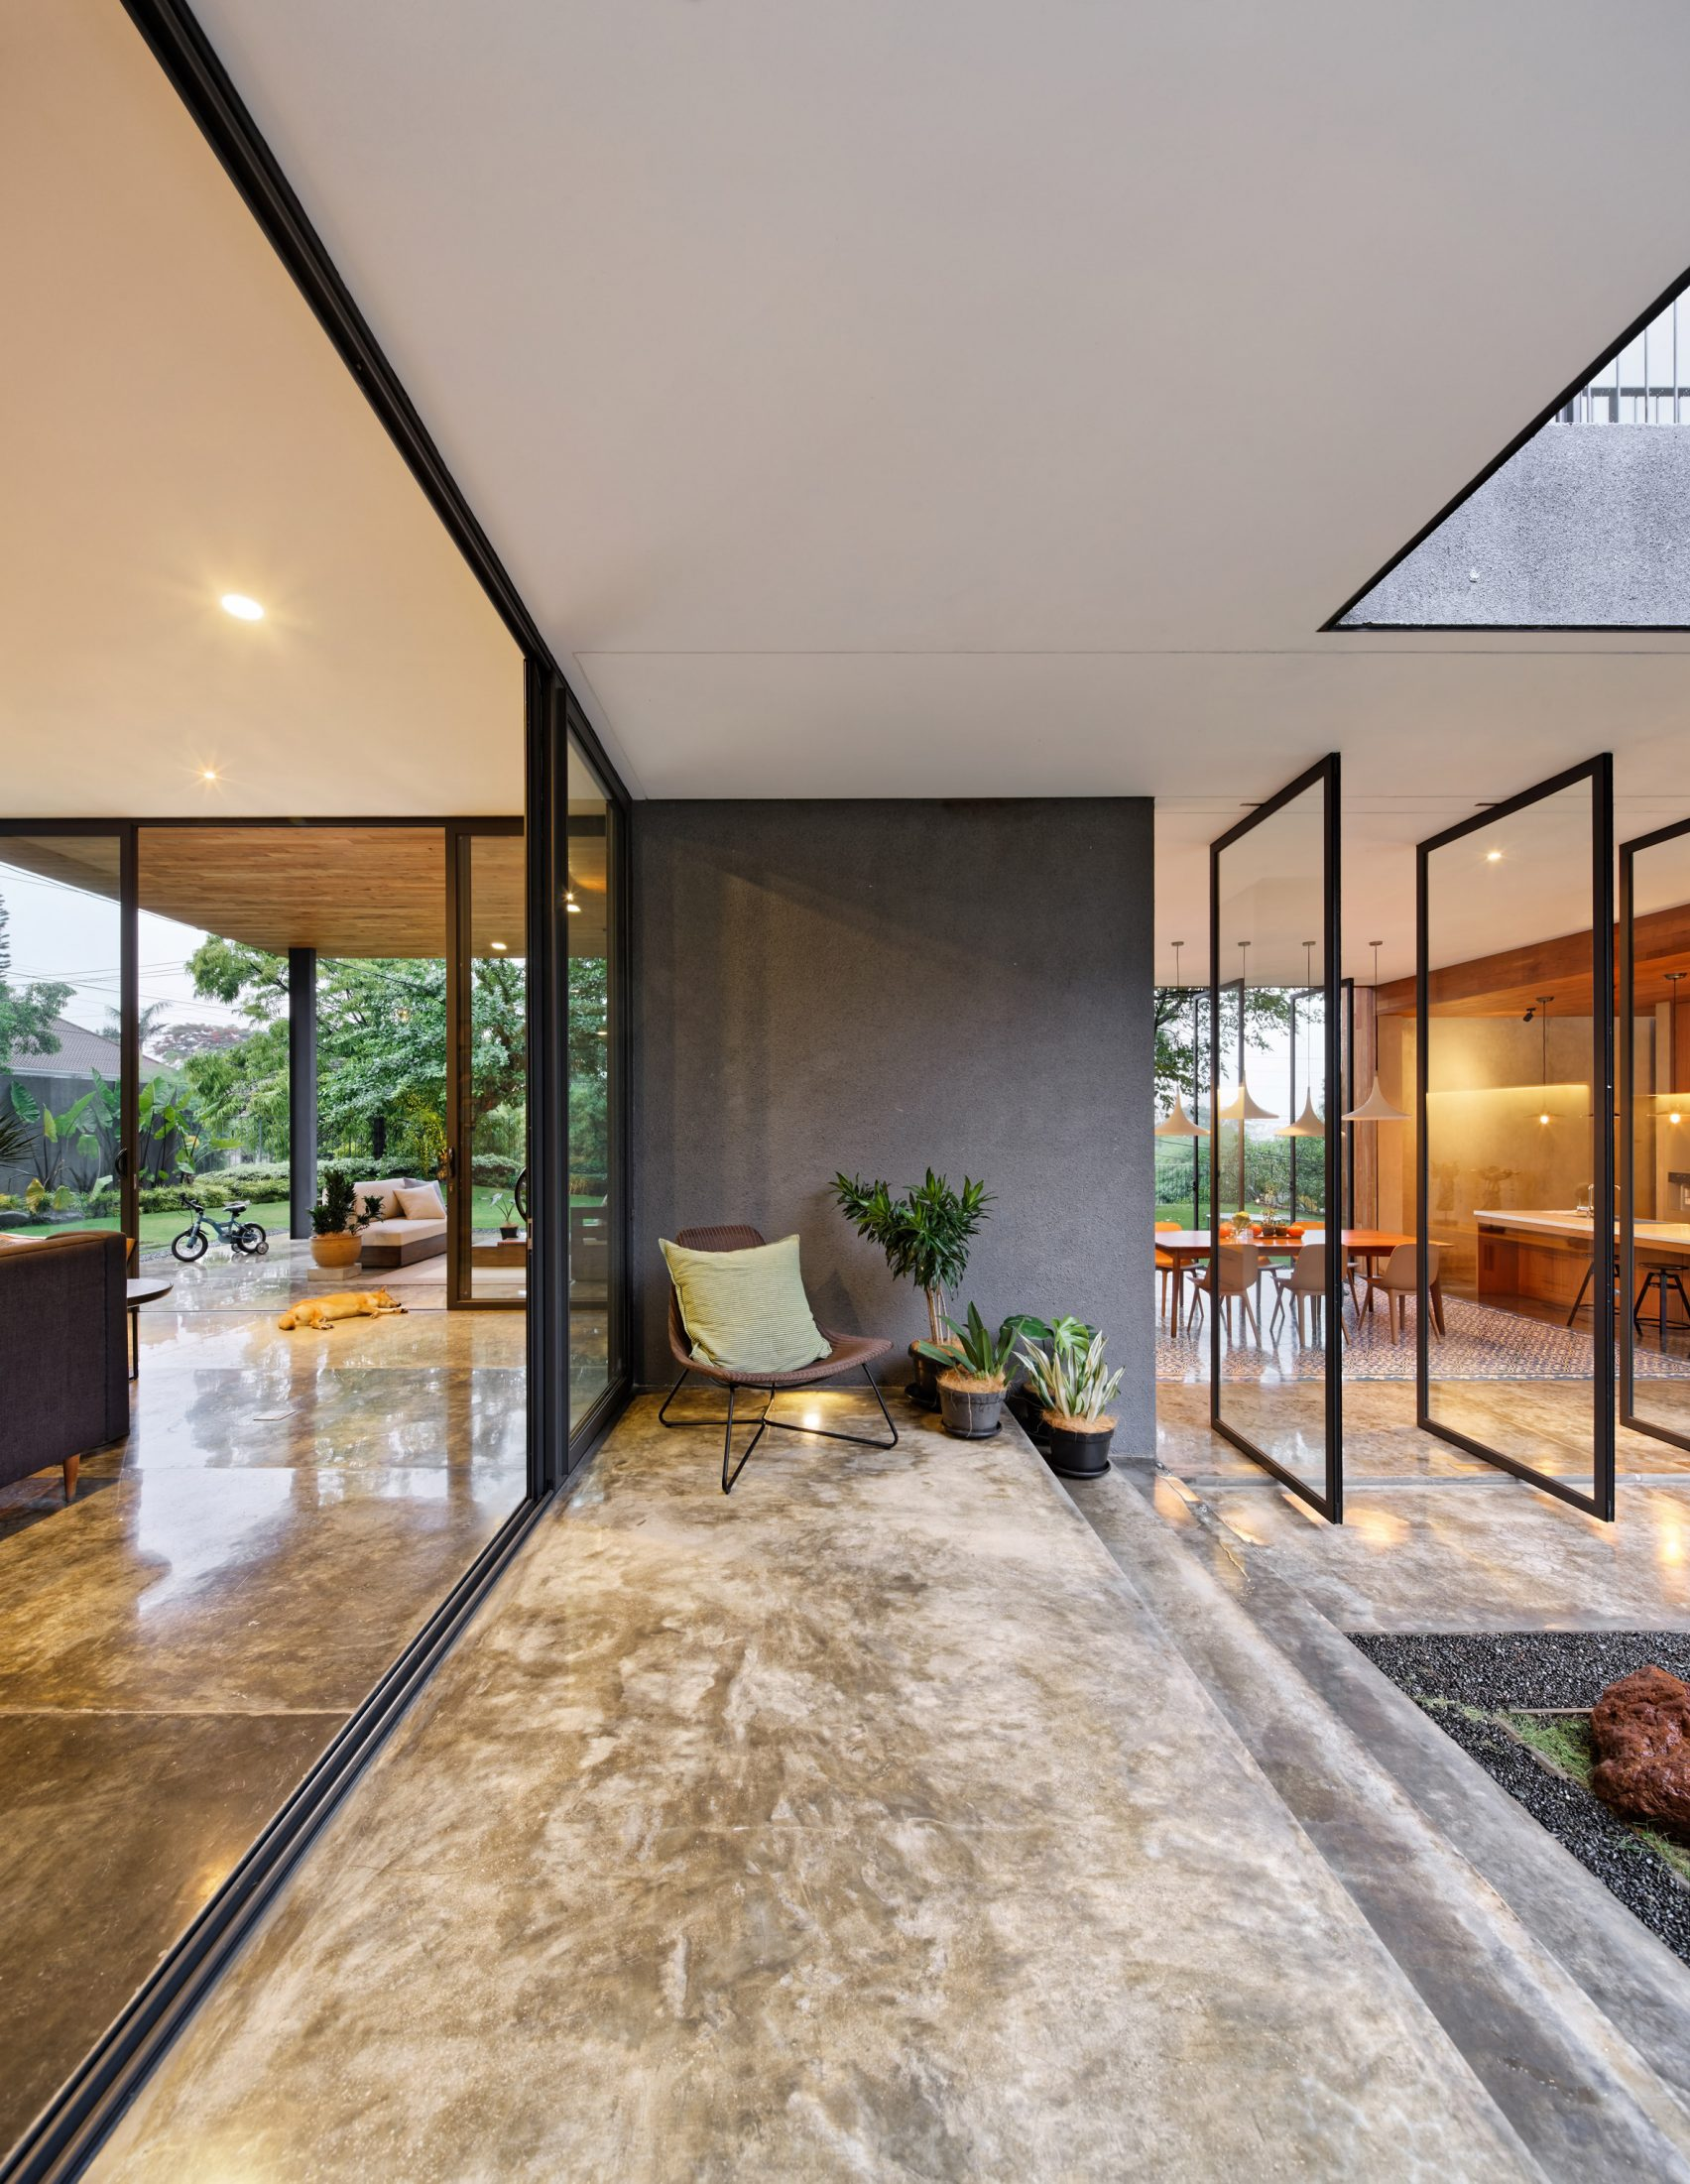 house-inside-outside-tamara-wibowo-architecture-residential-indonesia_dezeen_2364_col_3-1704x2202.jpg